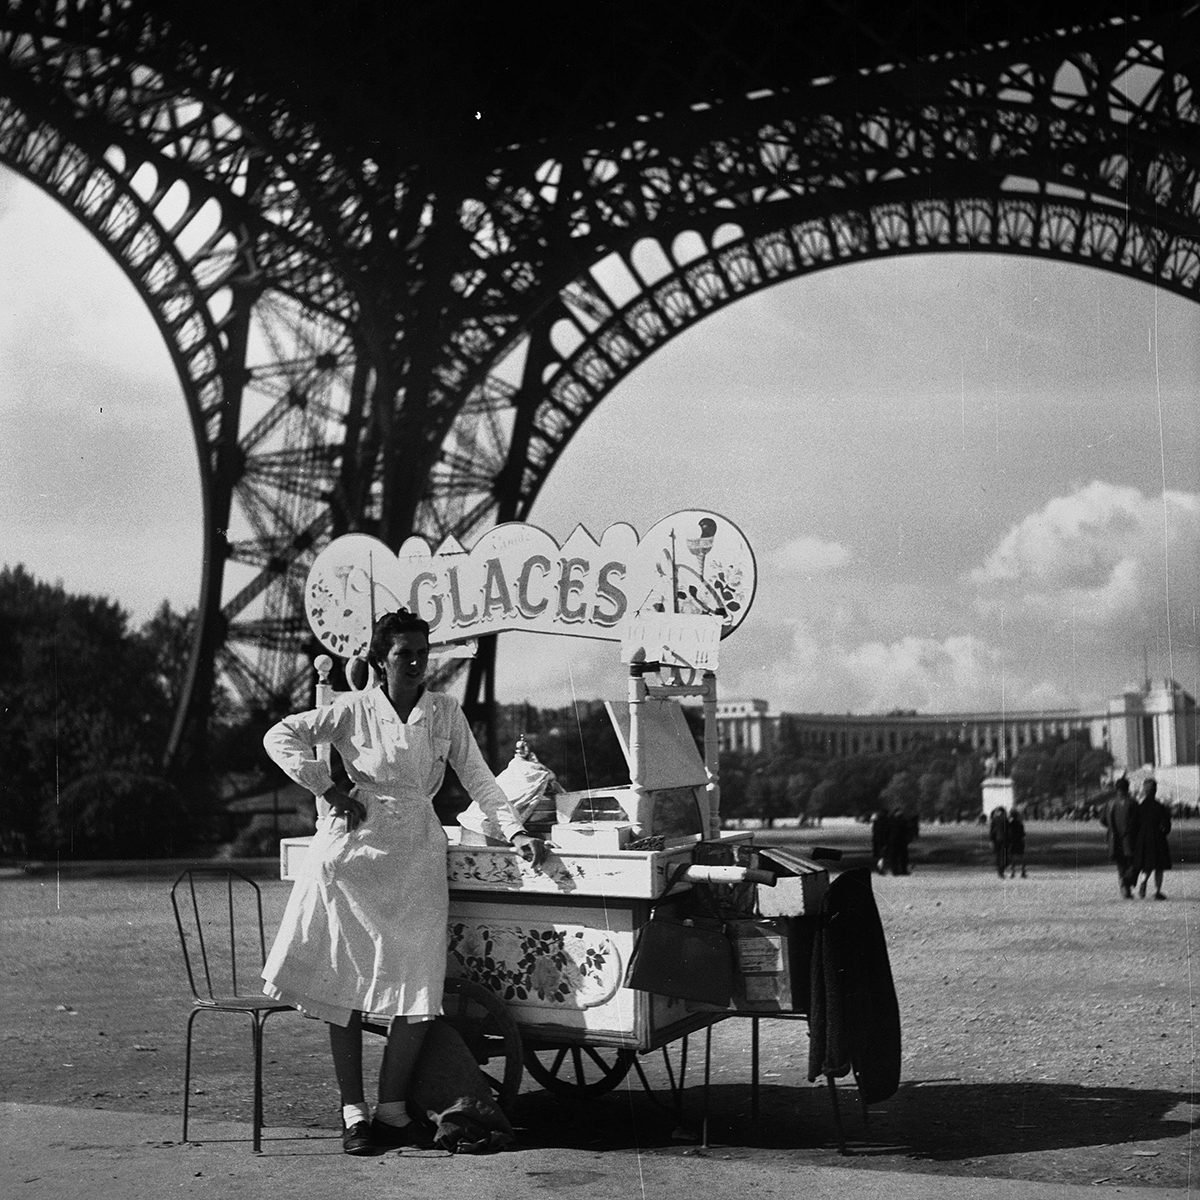 FRANCE - CIRCA 1950: Paris. Ice-cream seller in the Eiffel tower. (Photo by Roger Viollet via Getty Images)